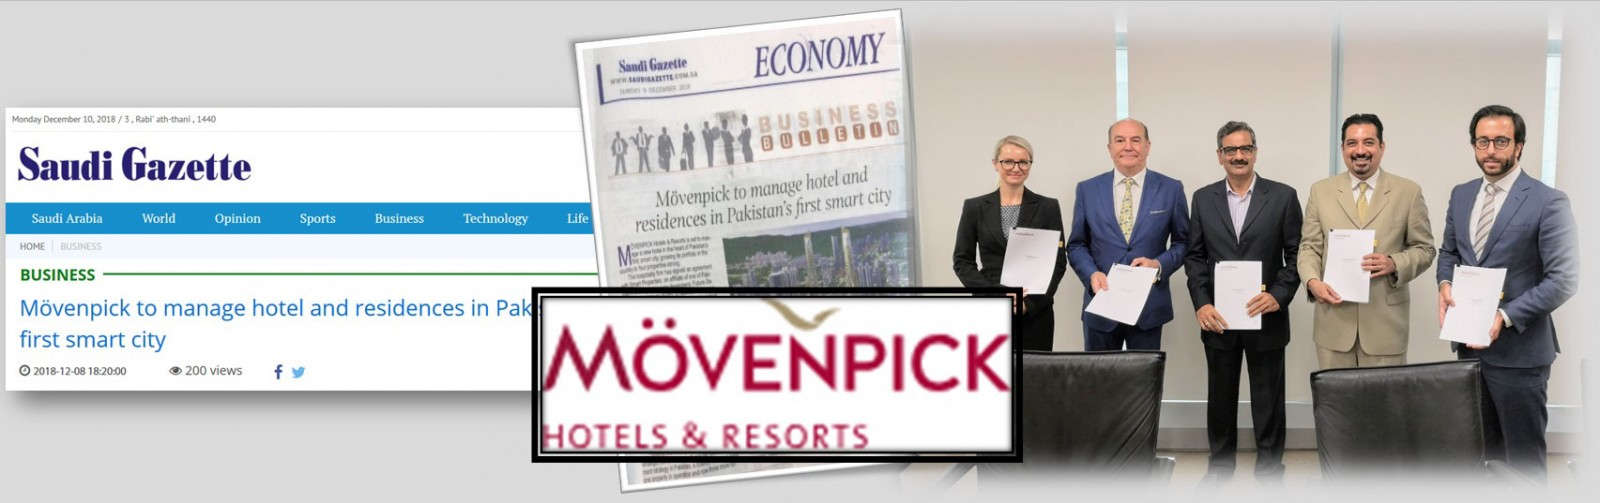 Mövenpick to manage hotel and residences in Pakistan's first smart city